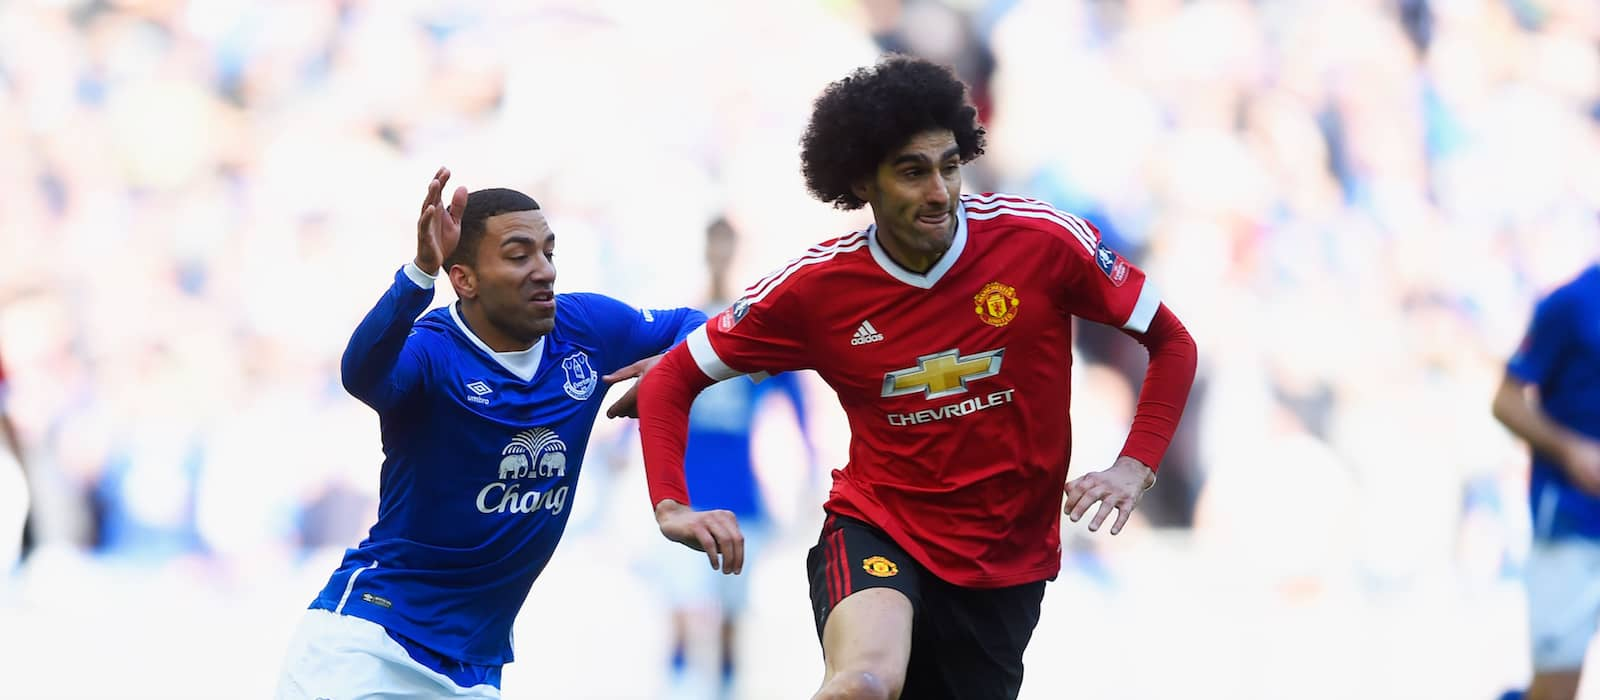 Louis van Gaal praises Marouane Fellaini for his ability to follow instructions